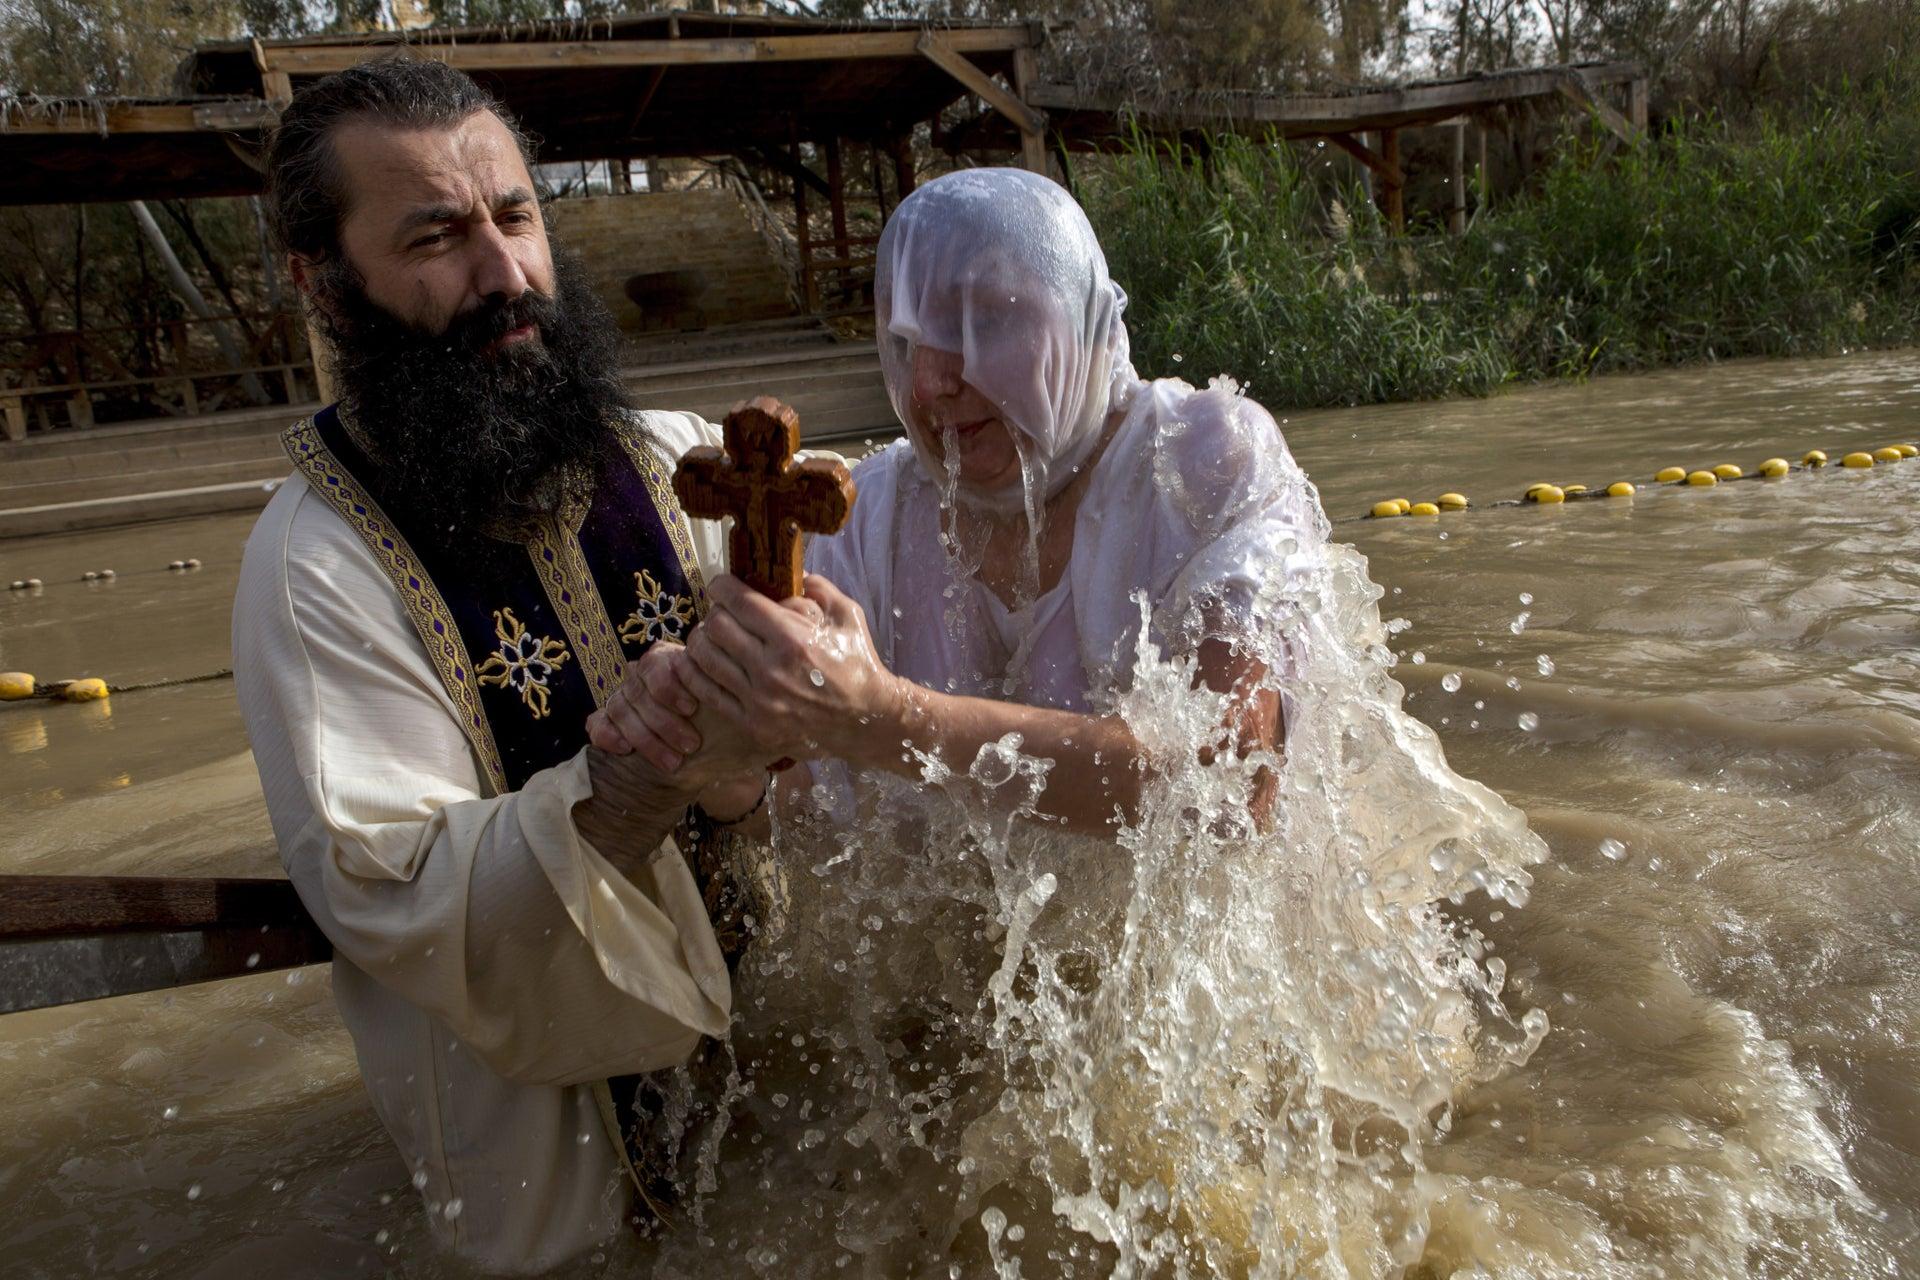 A Christian pilgrim prays as she dips in the water at the baptismal site known as Qasr el-Yahud on the banks of the Jordan River near the West Bank city of Jericho.